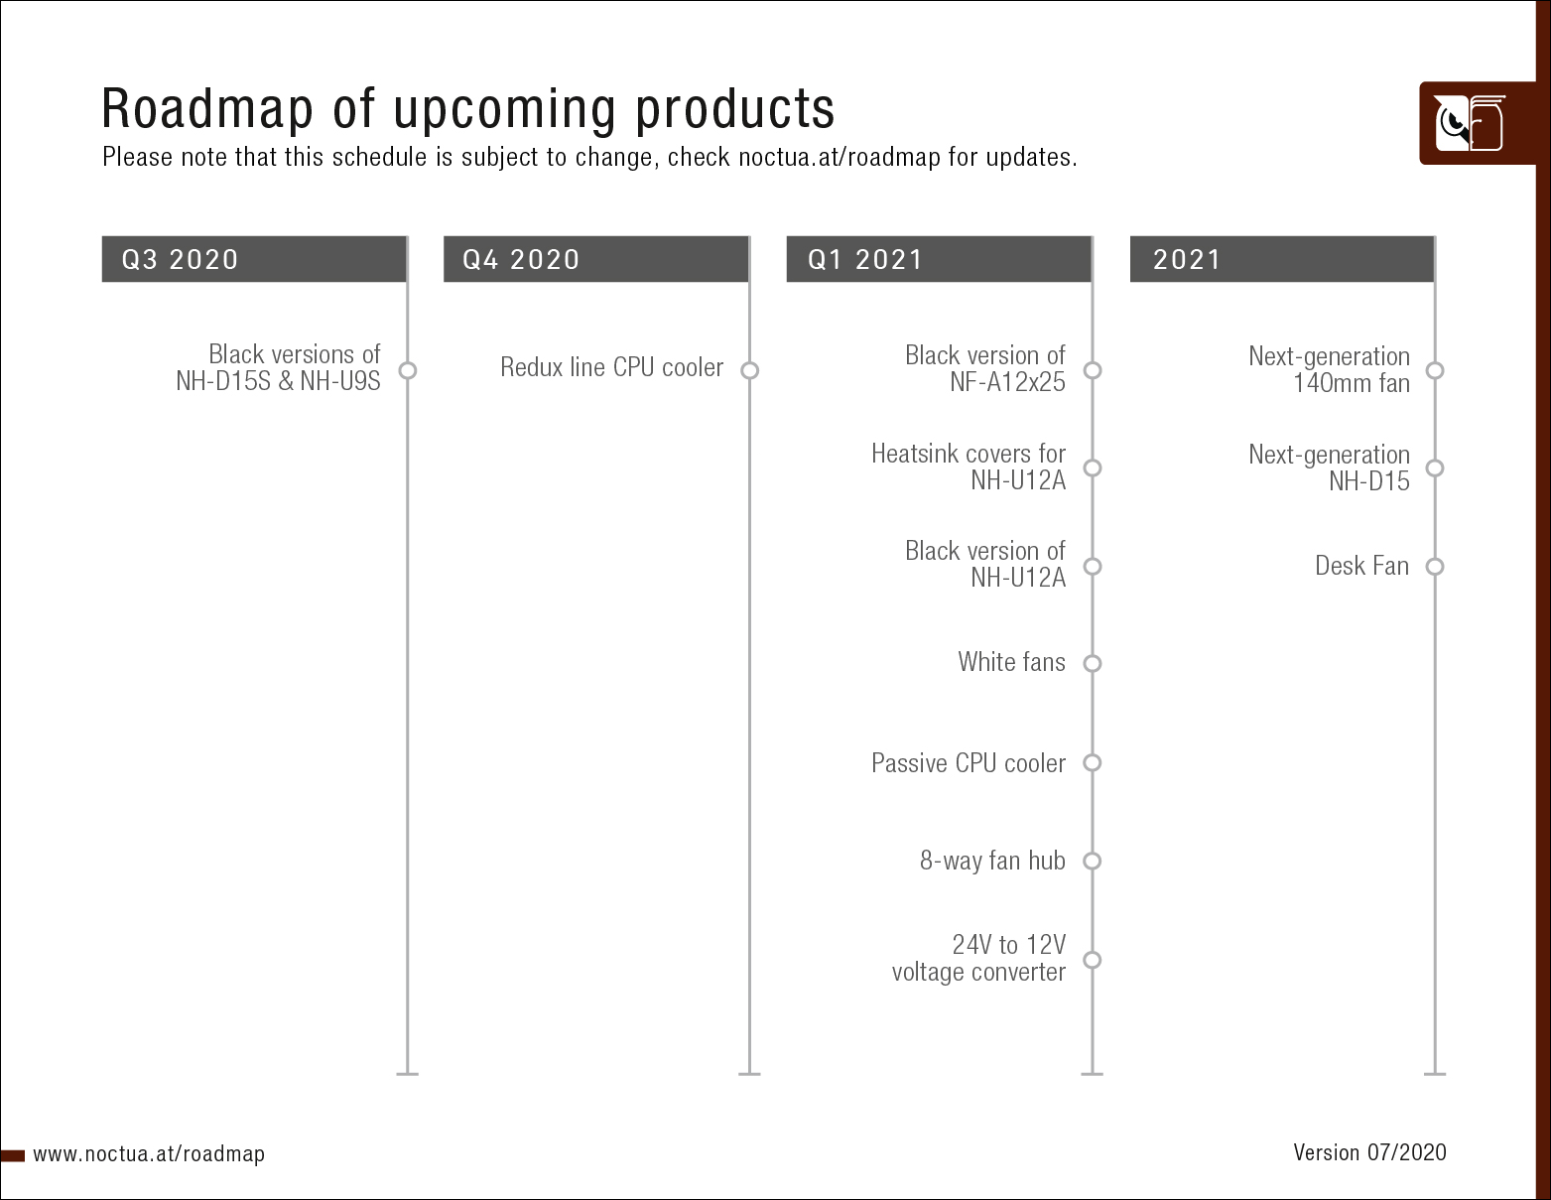 Noctua product roadmap